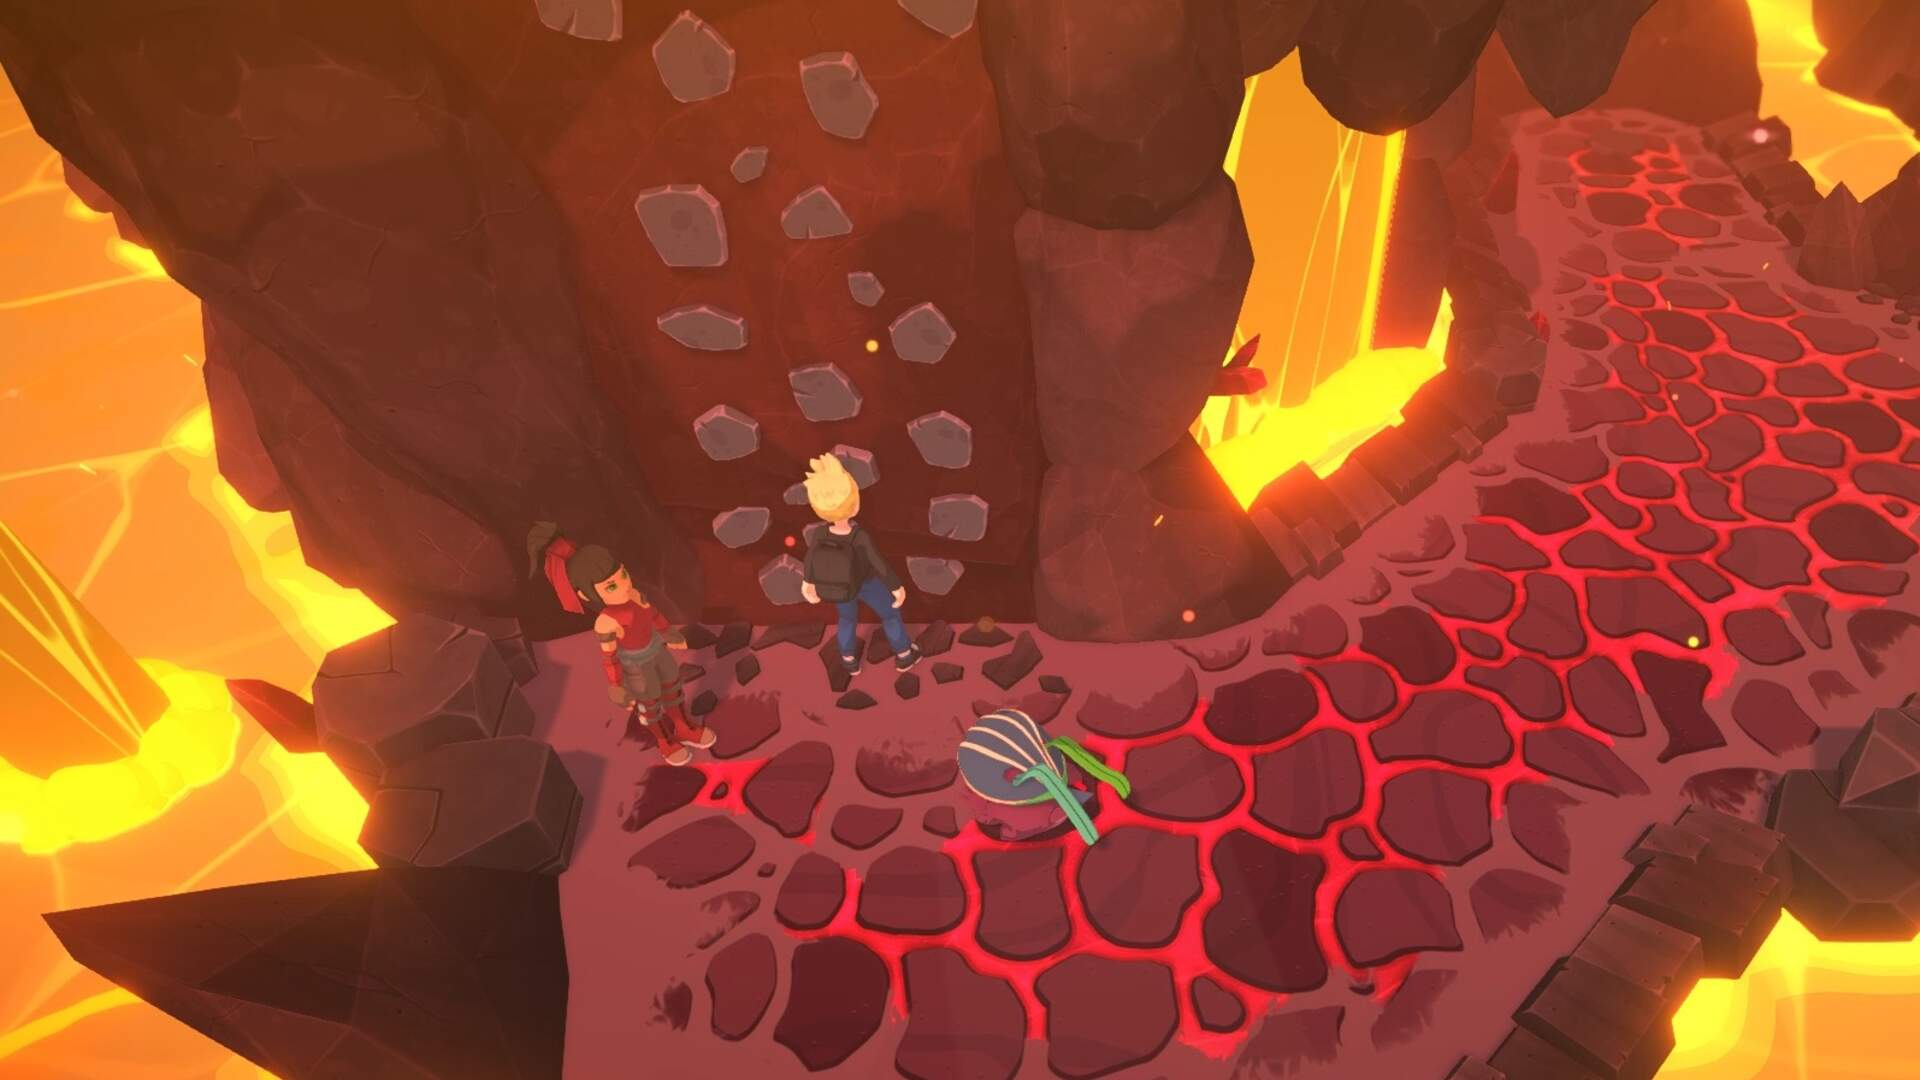 Temtem: How to Get the Gravitonic Piolets Climbing Gear